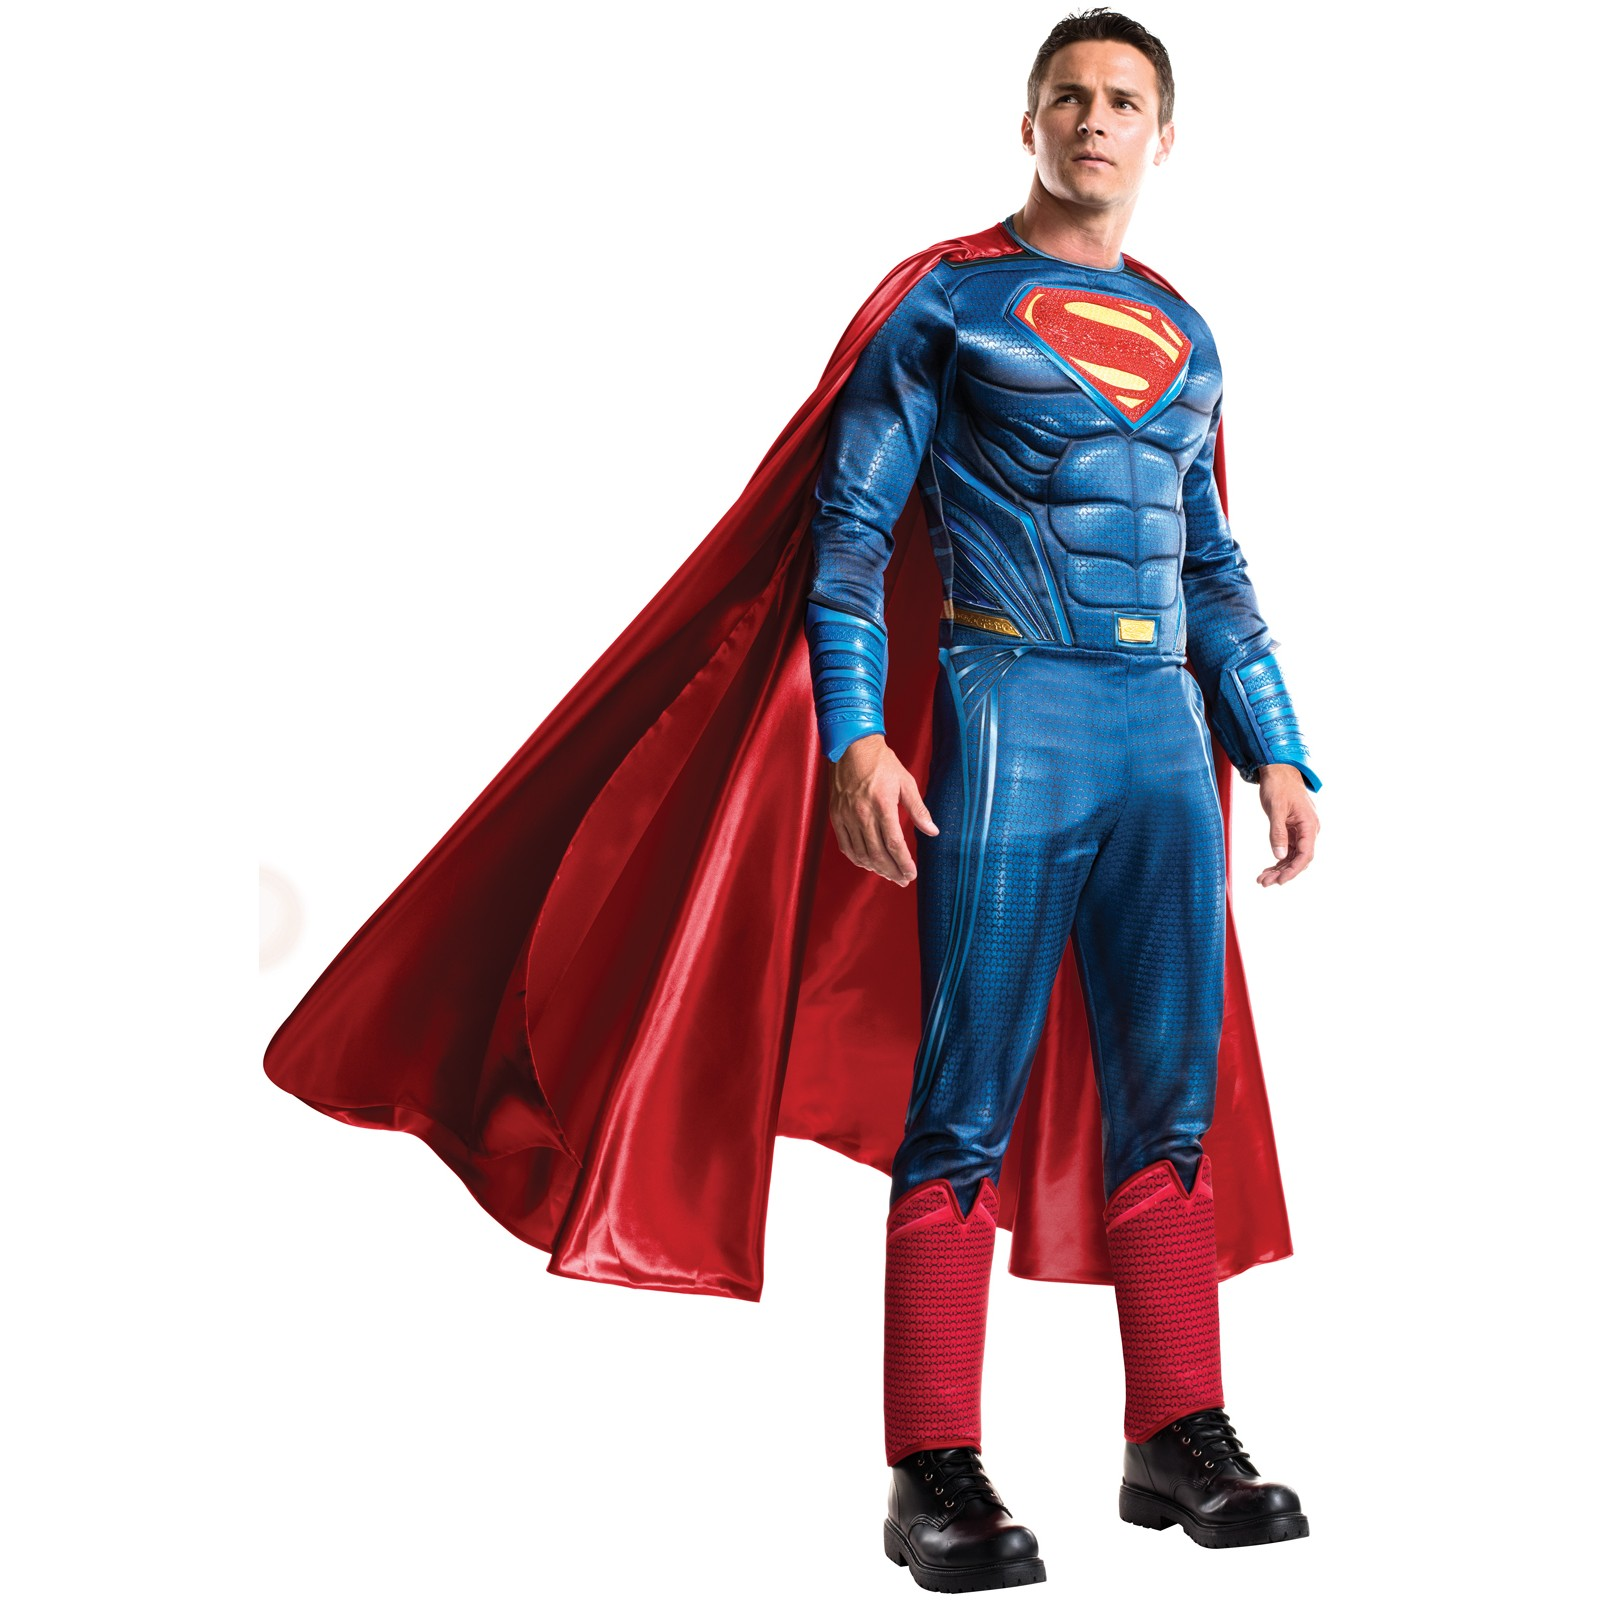 HIRE. a91efb63466db2562a7c39ffb046a514  sc 1 st  Wear It Out : superman halloween costumes  - Germanpascual.Com